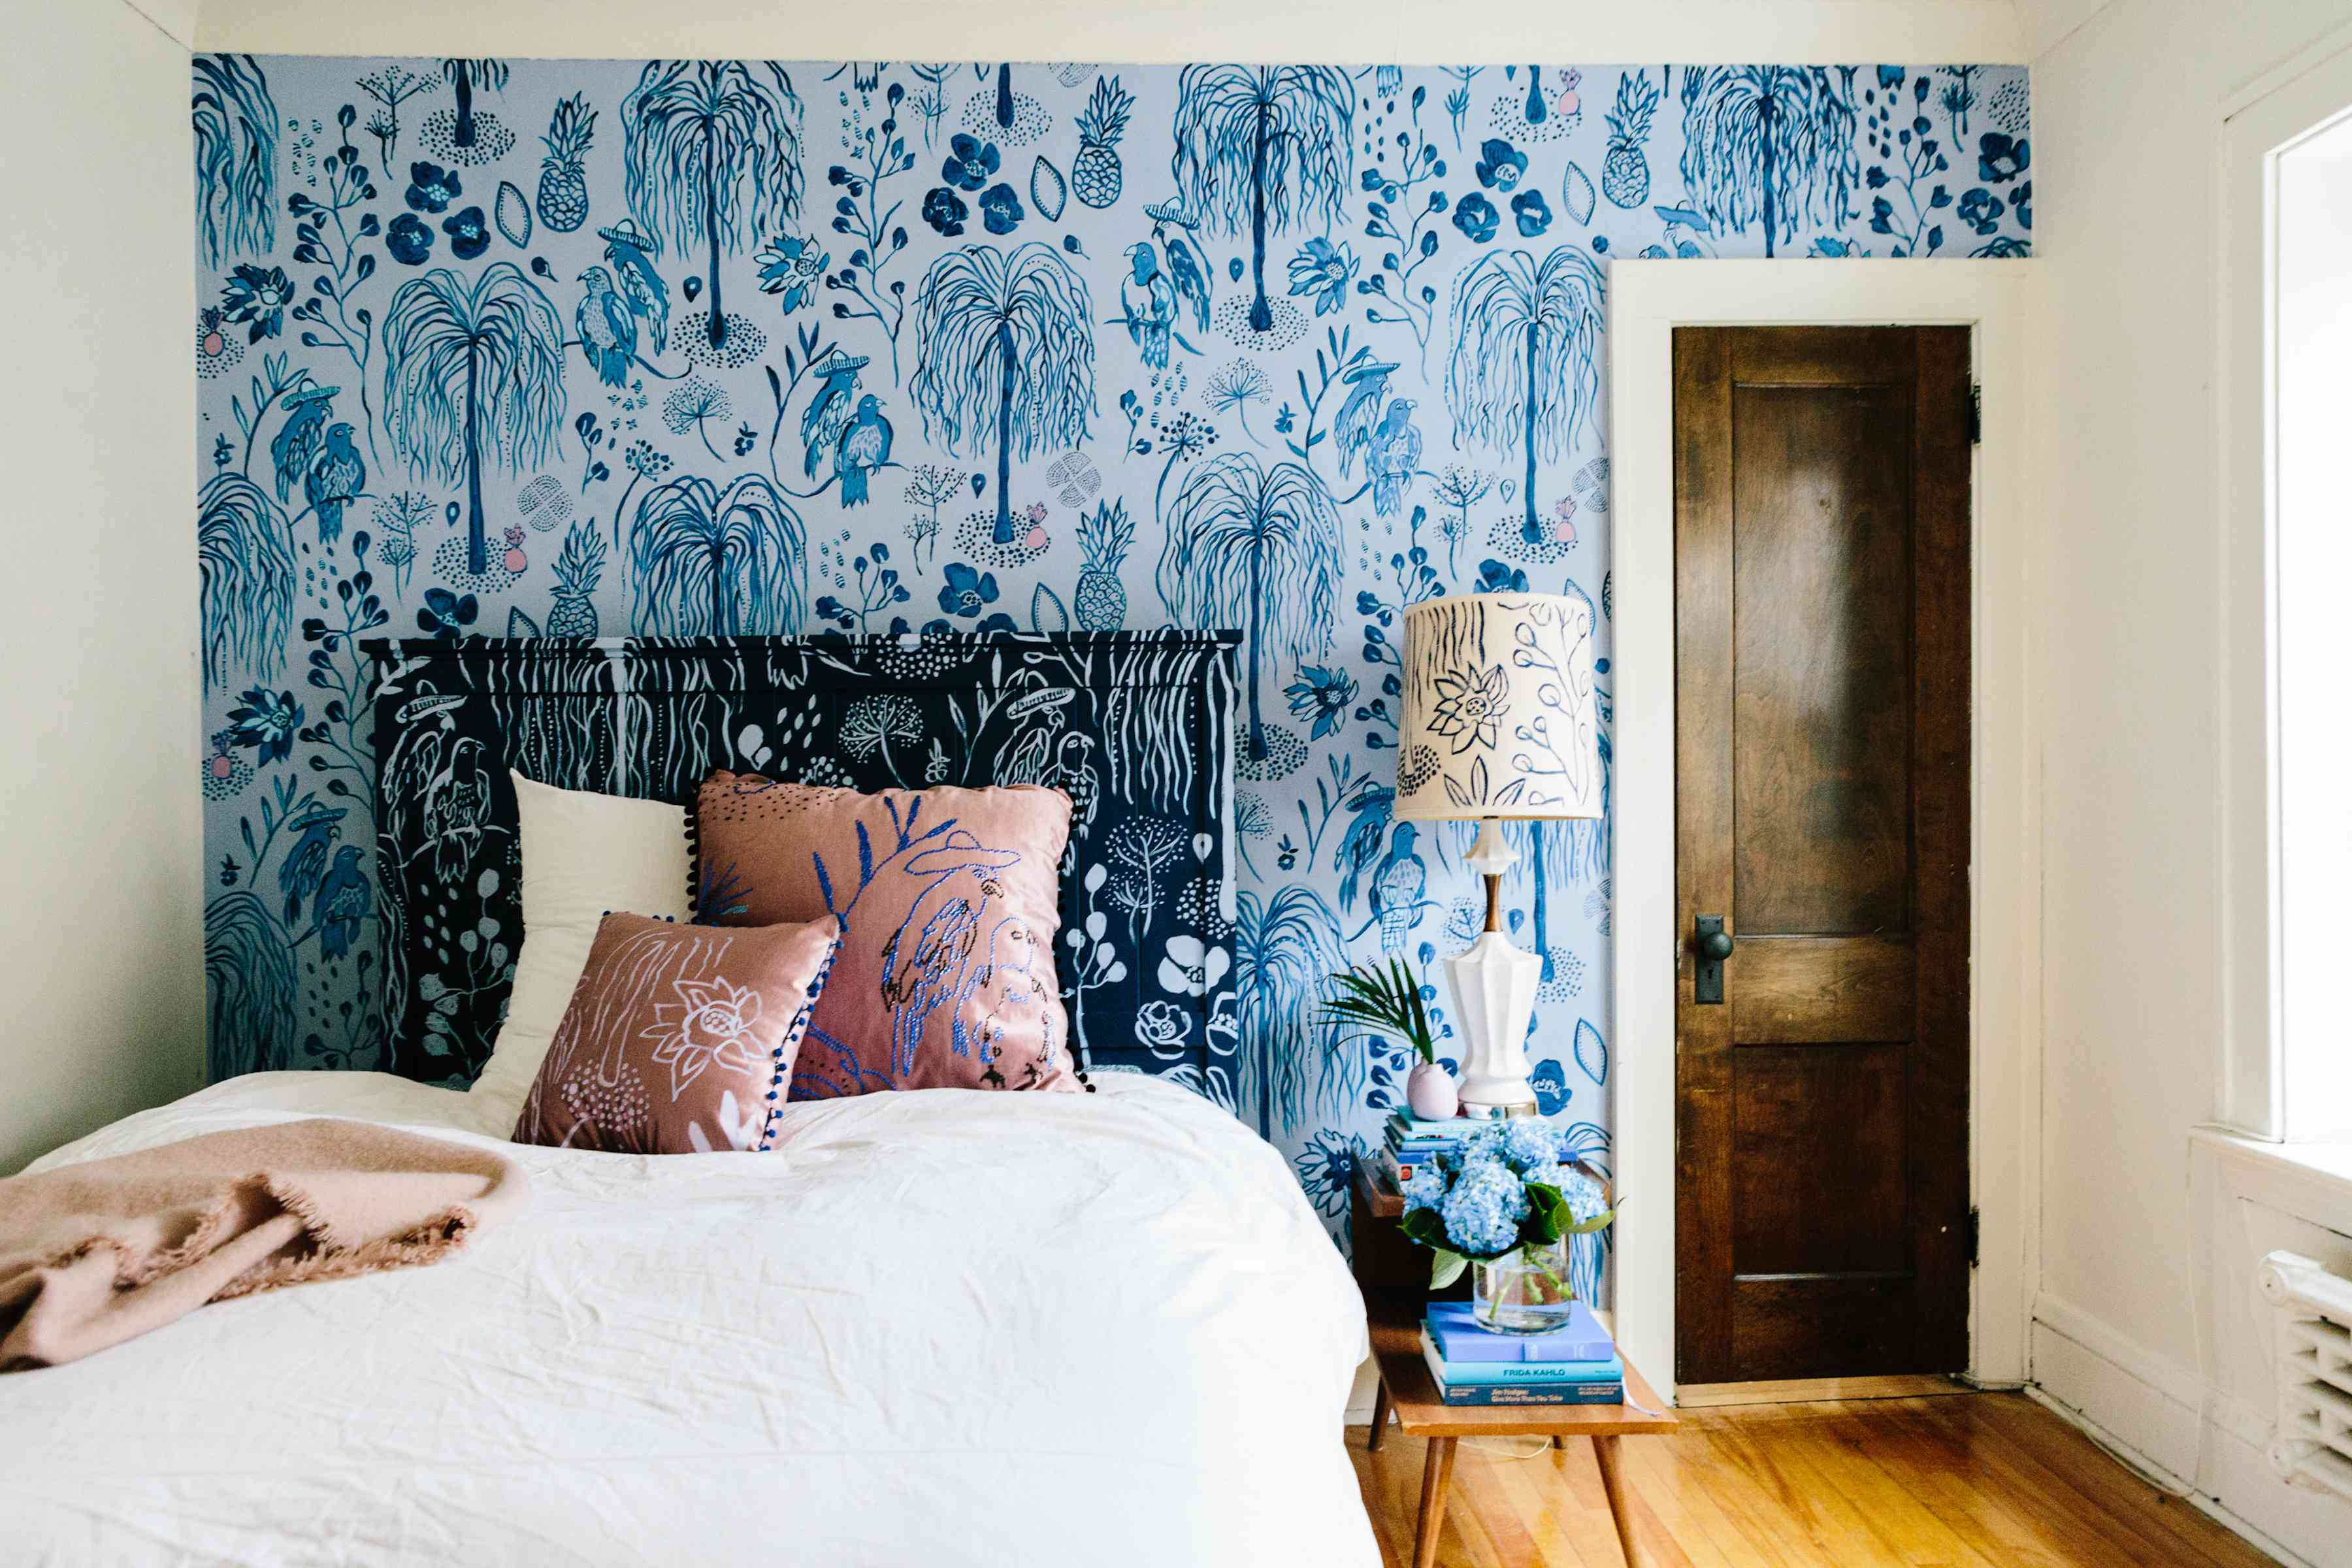 Bedroom with blue Paco Y Maria wallpaper by She She.